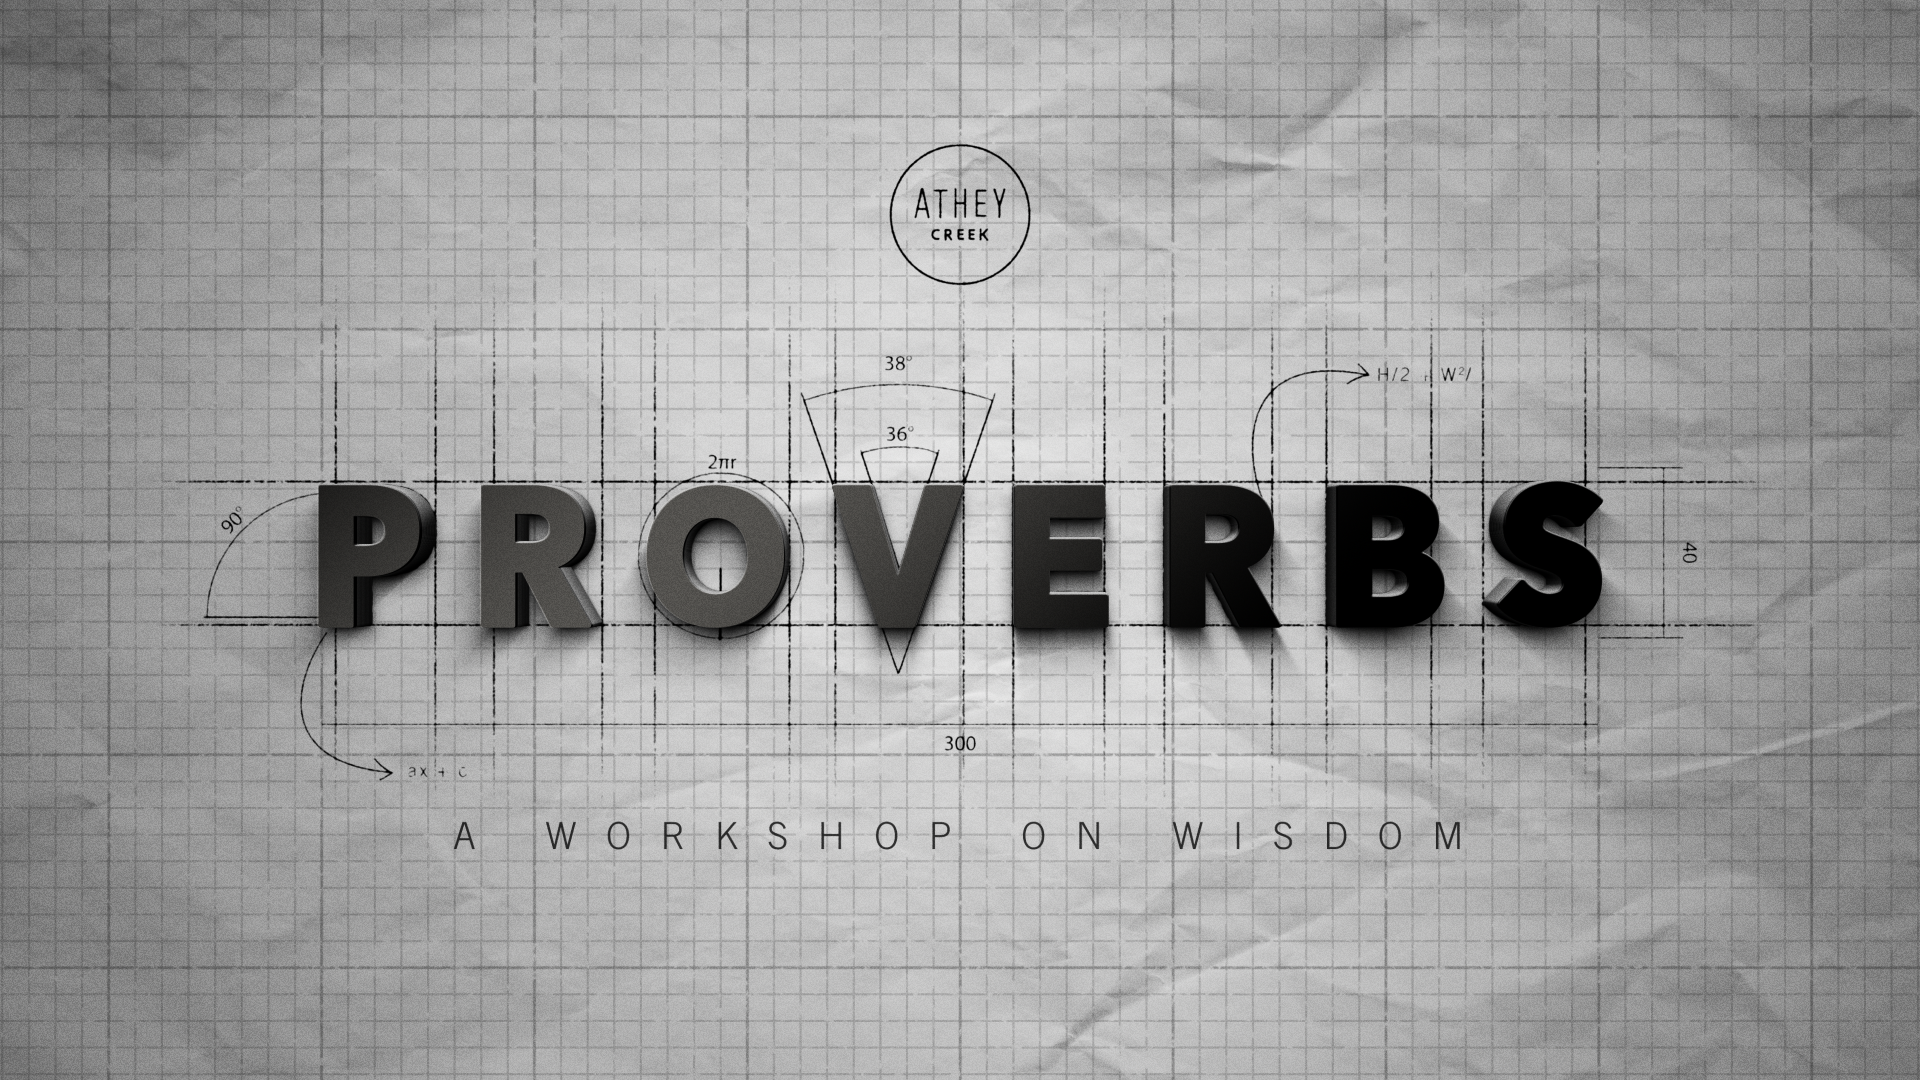 Poster forThrough the Bible (Proverbs 28:14 - 29:27)